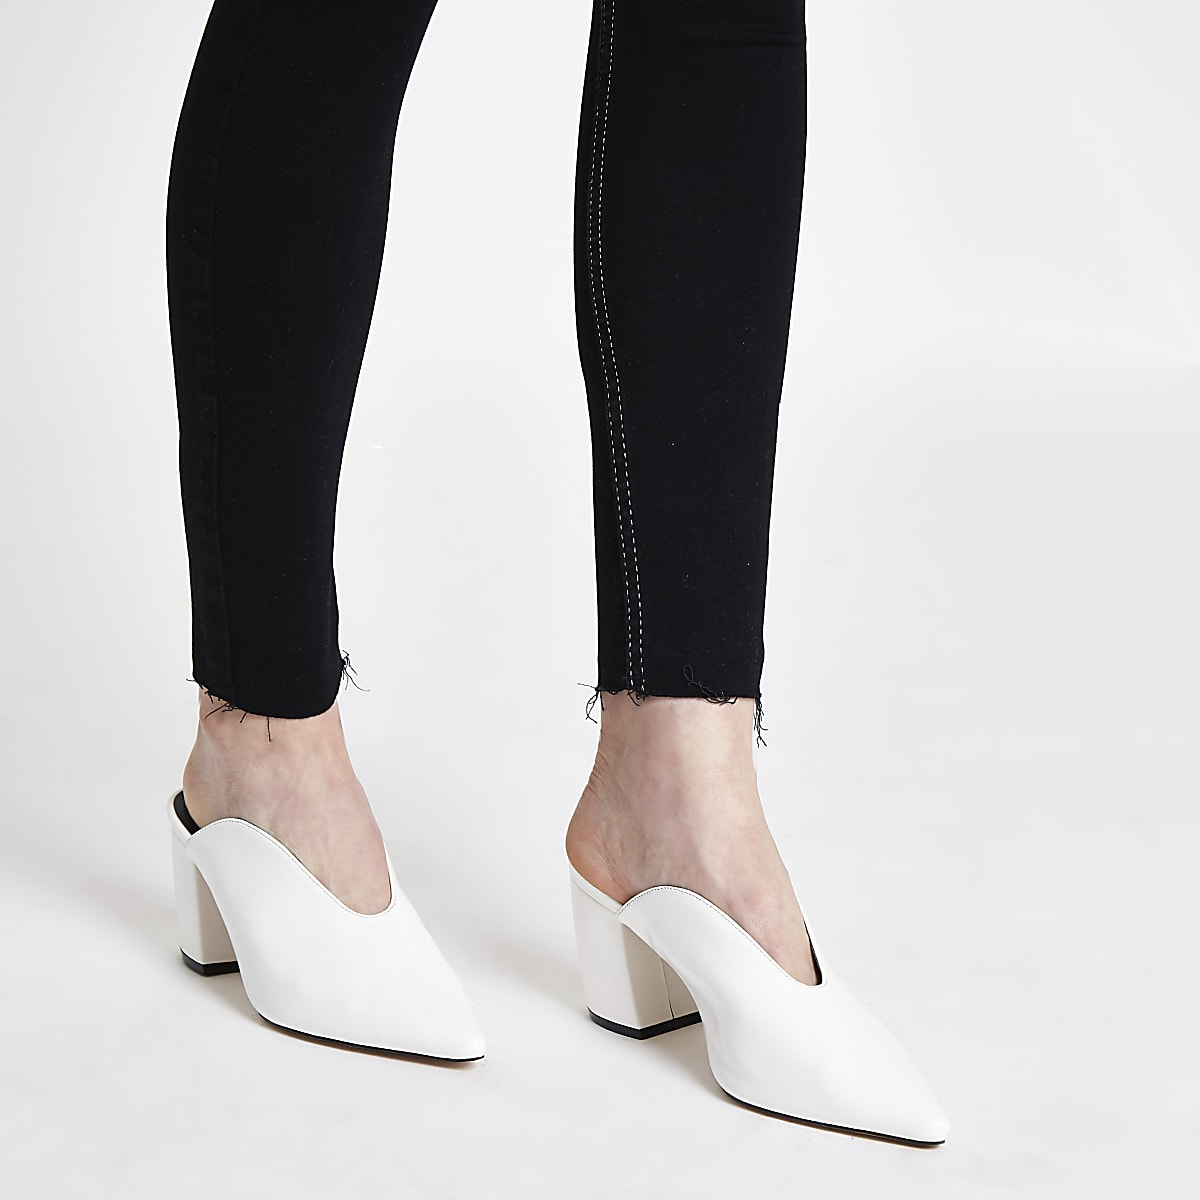 d1fc31c99f941 White curved heel mules - Shoes - Shoes & Boots - women